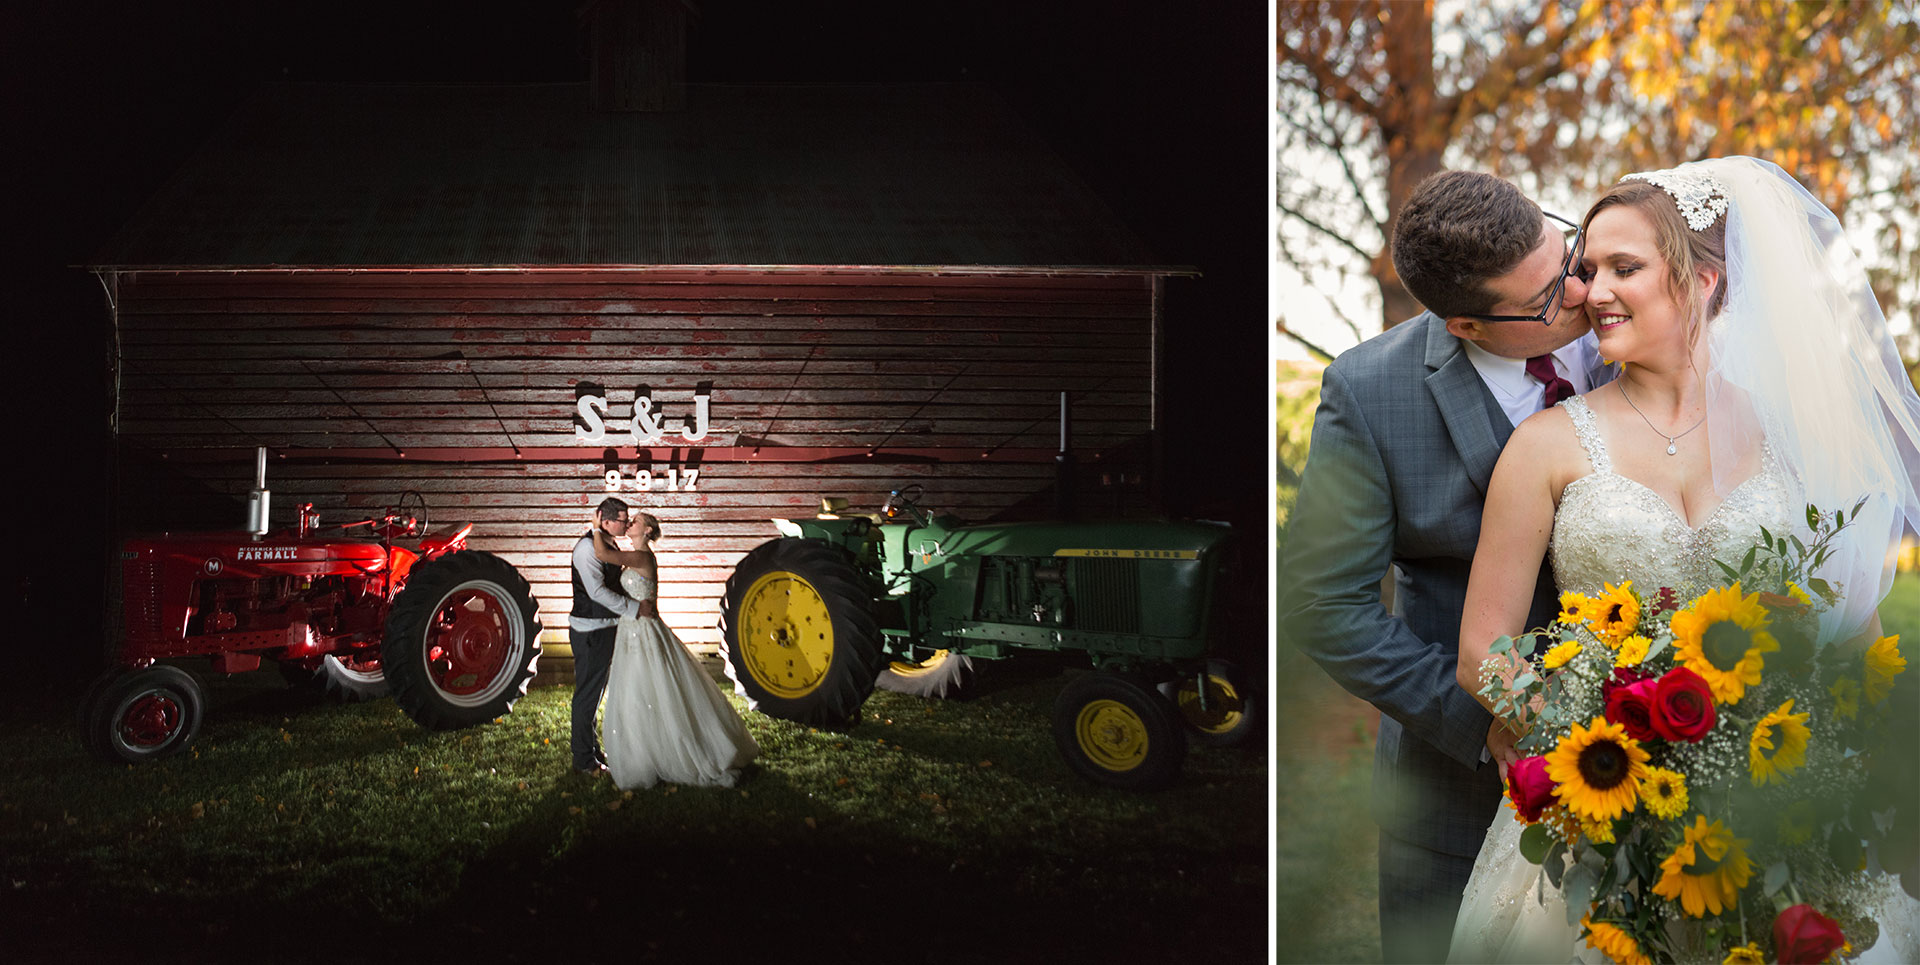 haar-married-illinois-valley-rustic-utica-toluca-peoria-central-illinois-bloomington-normal-wedding-engagement-photographer-photographers-photography.jpg